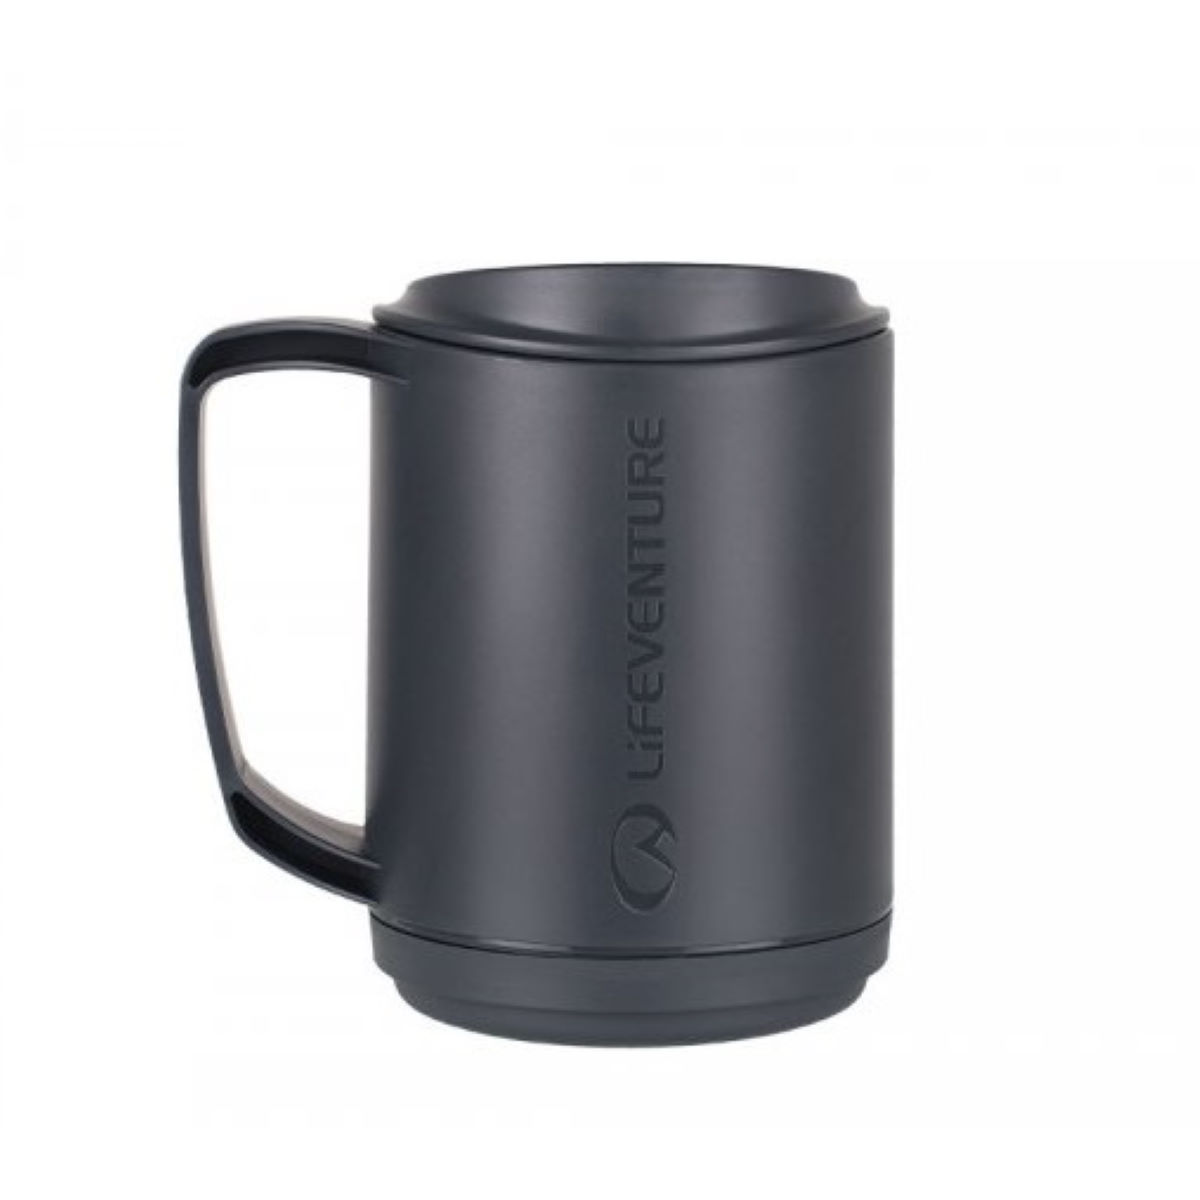 Lifeventure Ellipse Insulated Mug (Graphite) - Vajilla